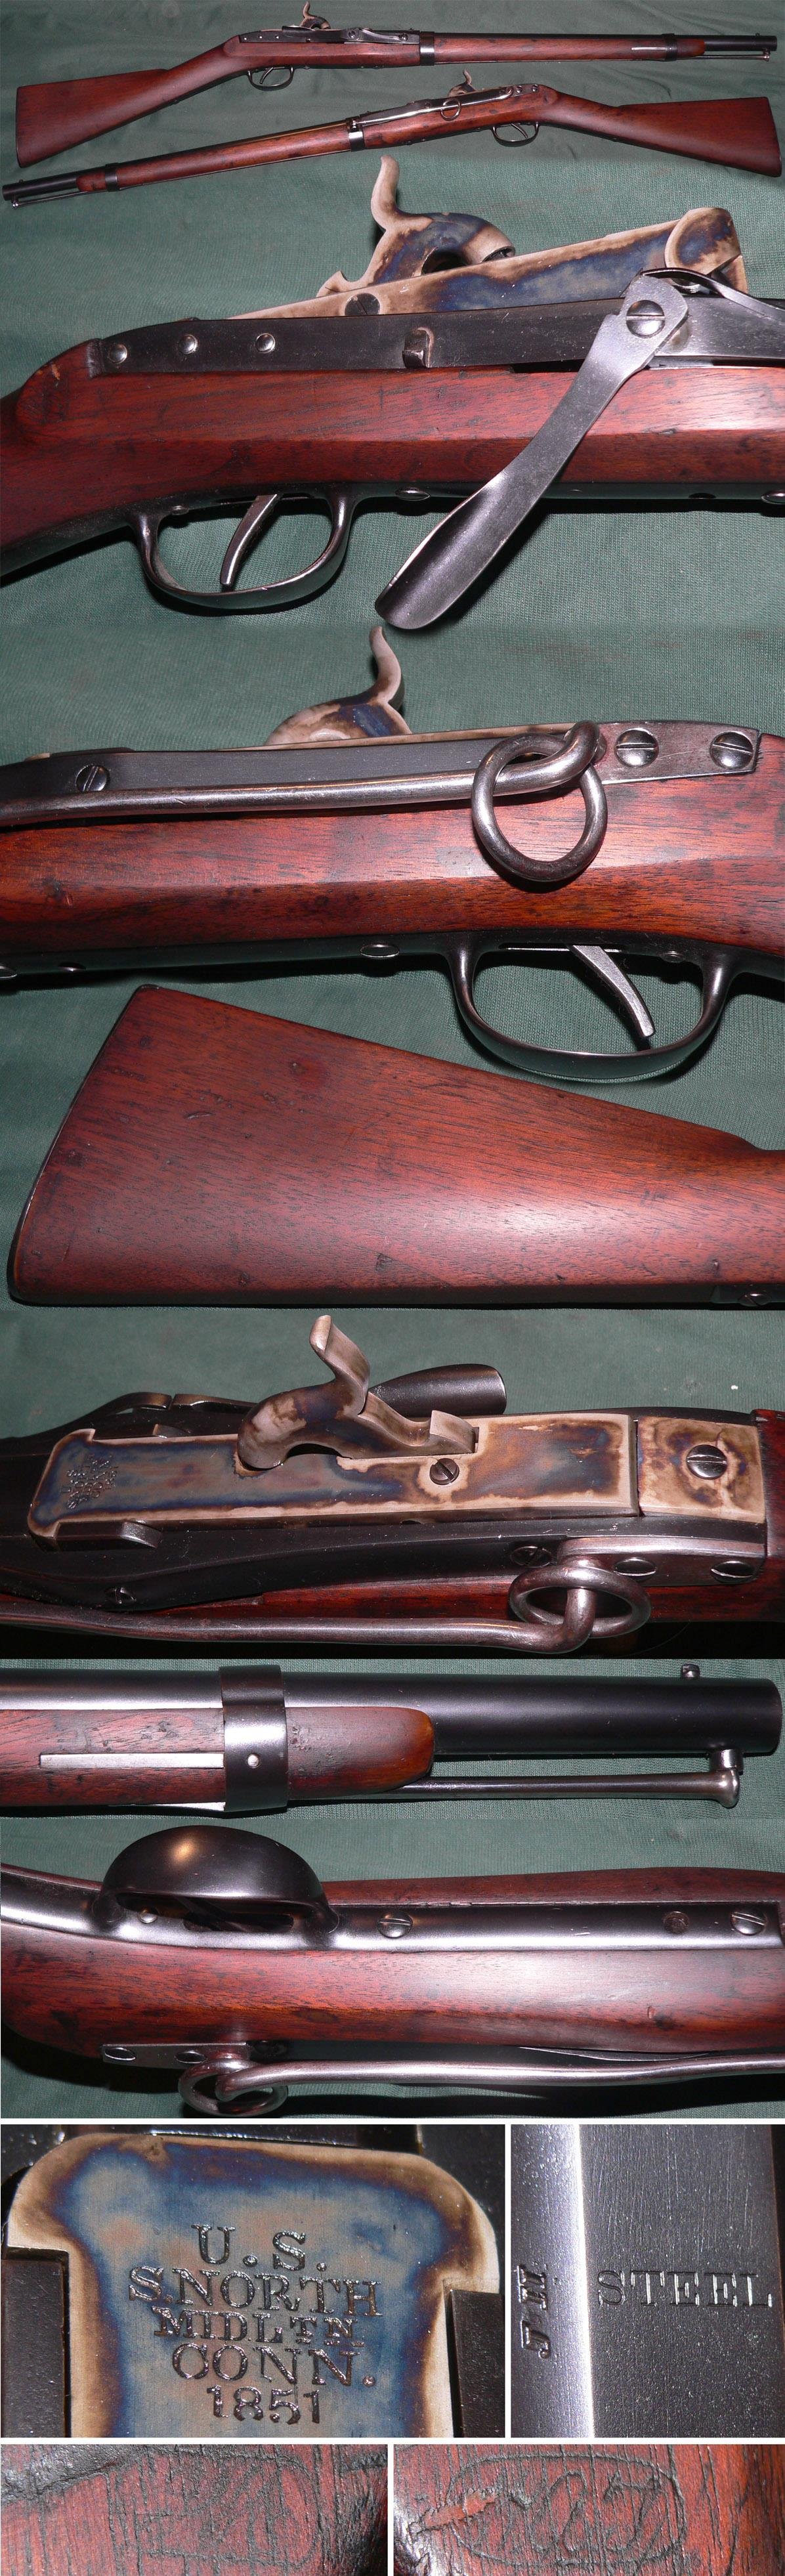 US M1843 Hall-North percussion breechloading carbine  Guns > Rifles > Antique (Pre-1899) Rifles - Perc. Misc.